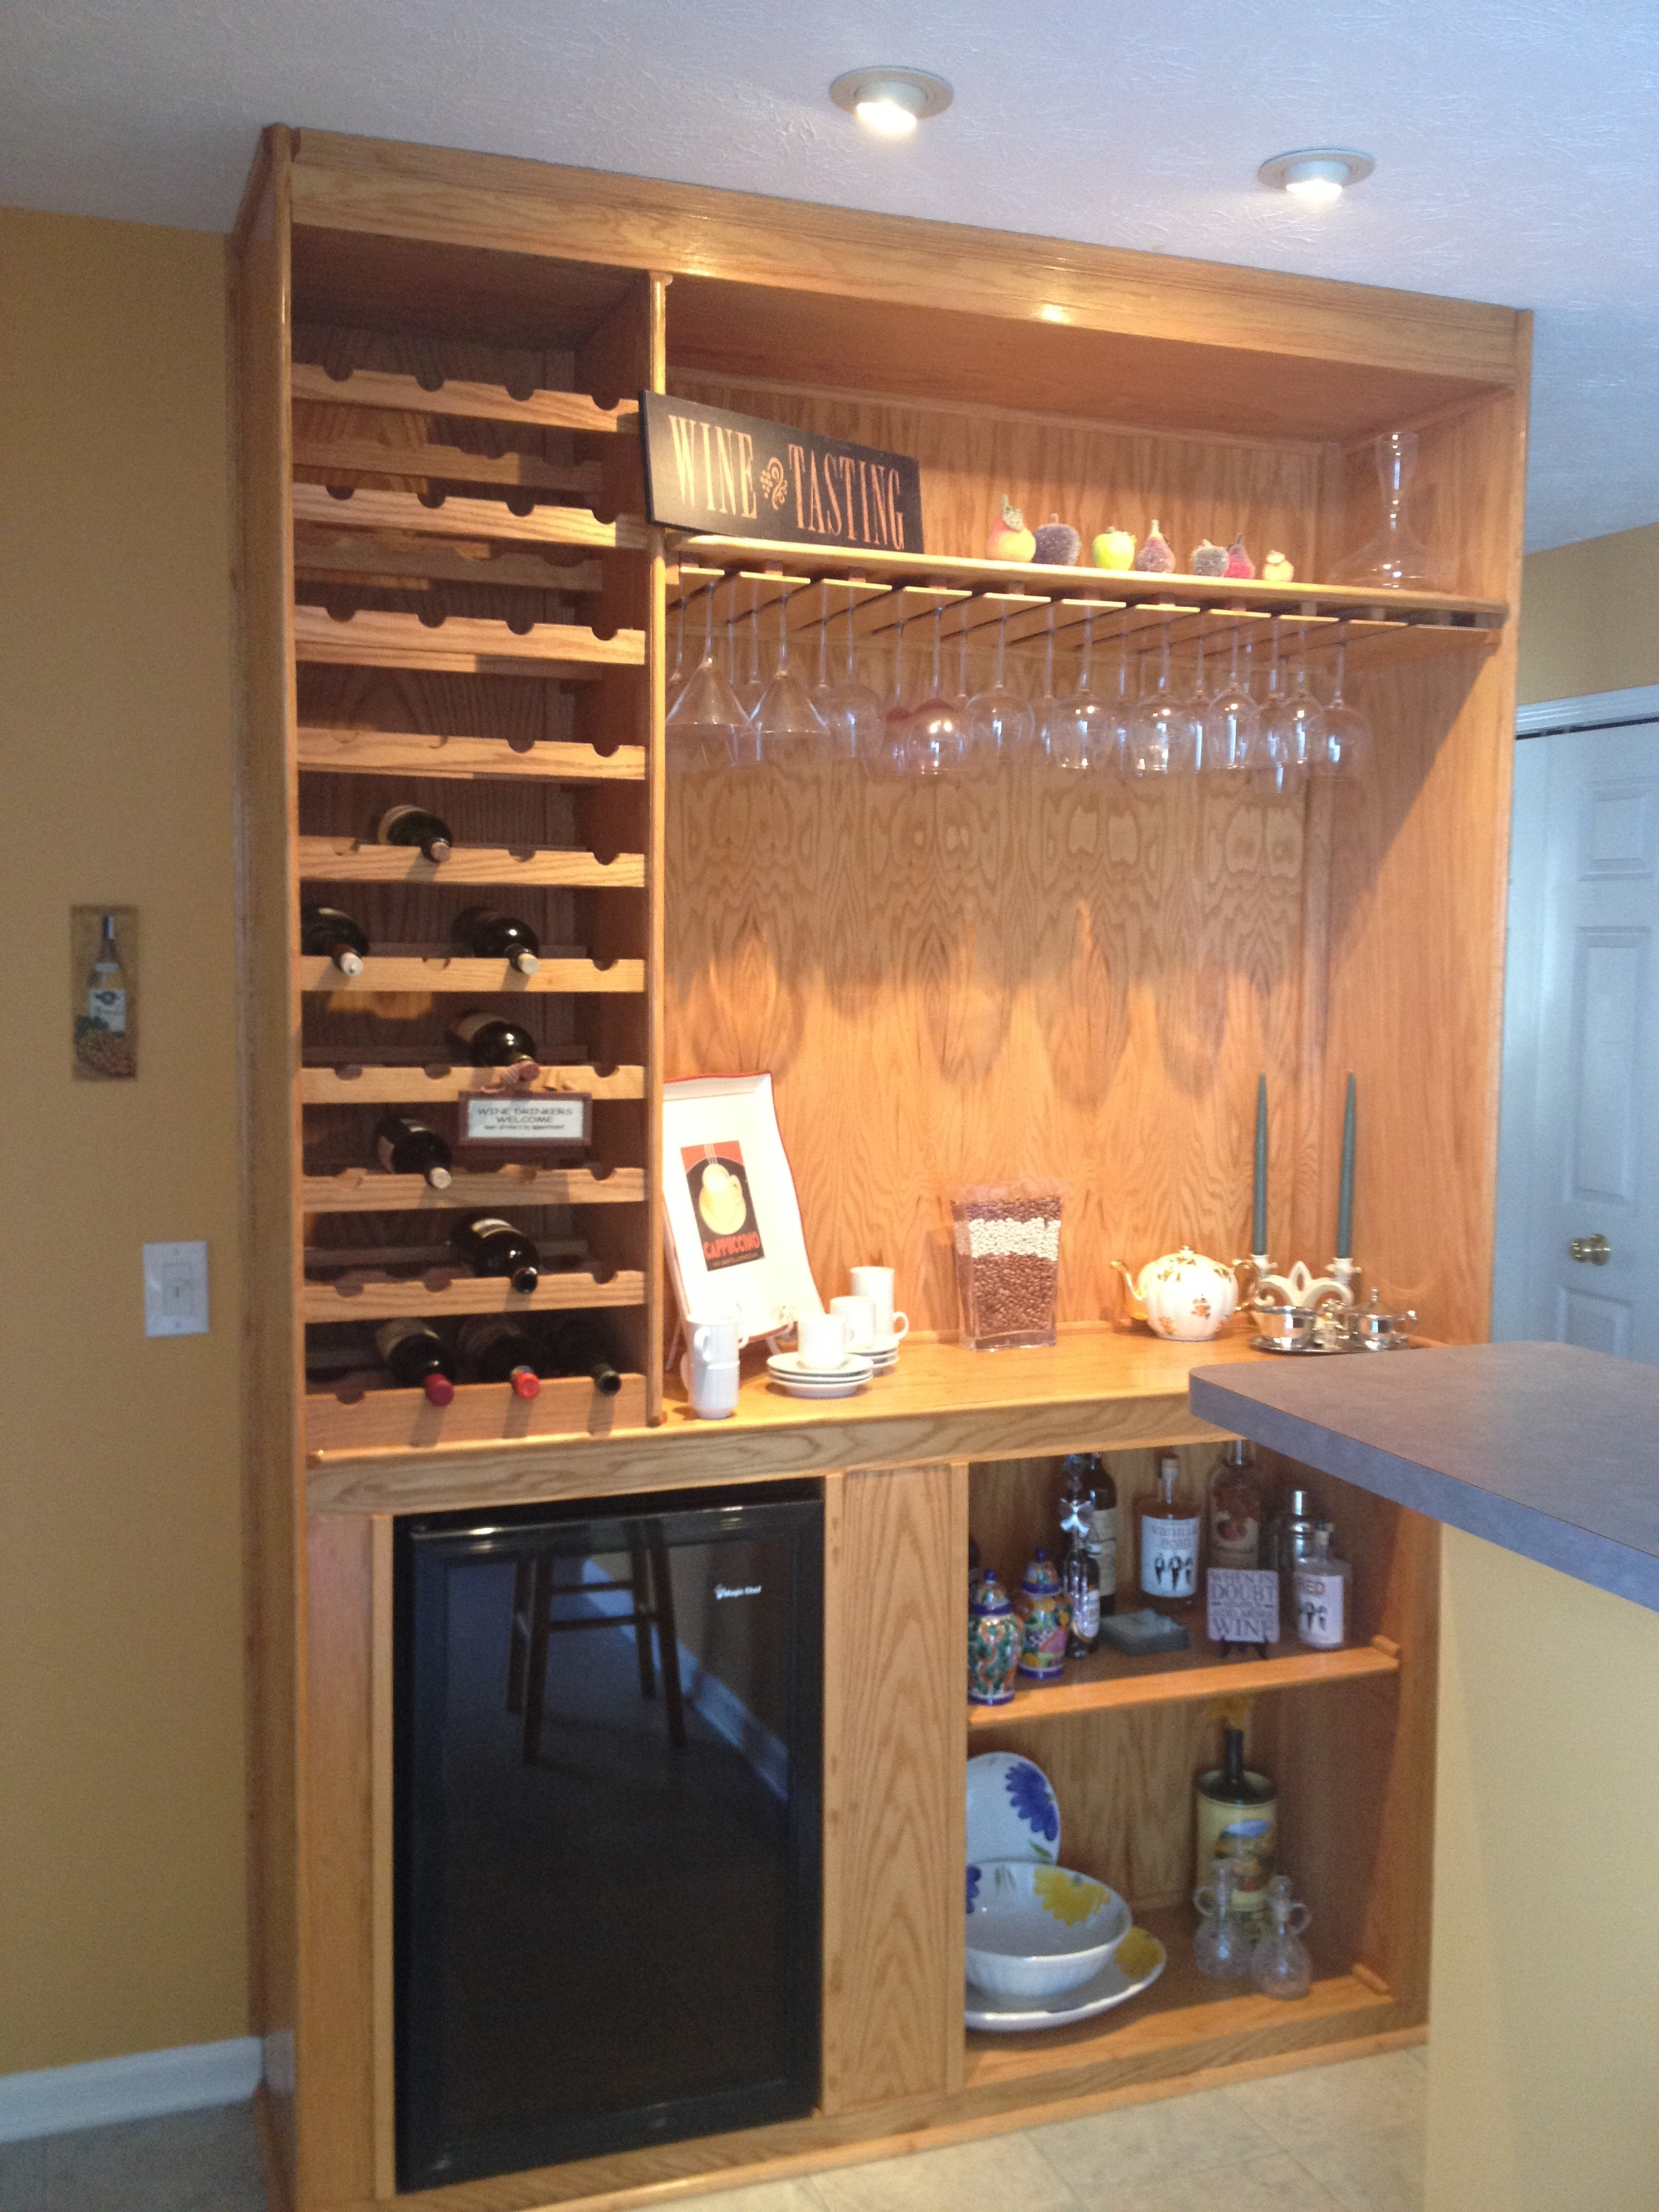 Storage for wines and glasses